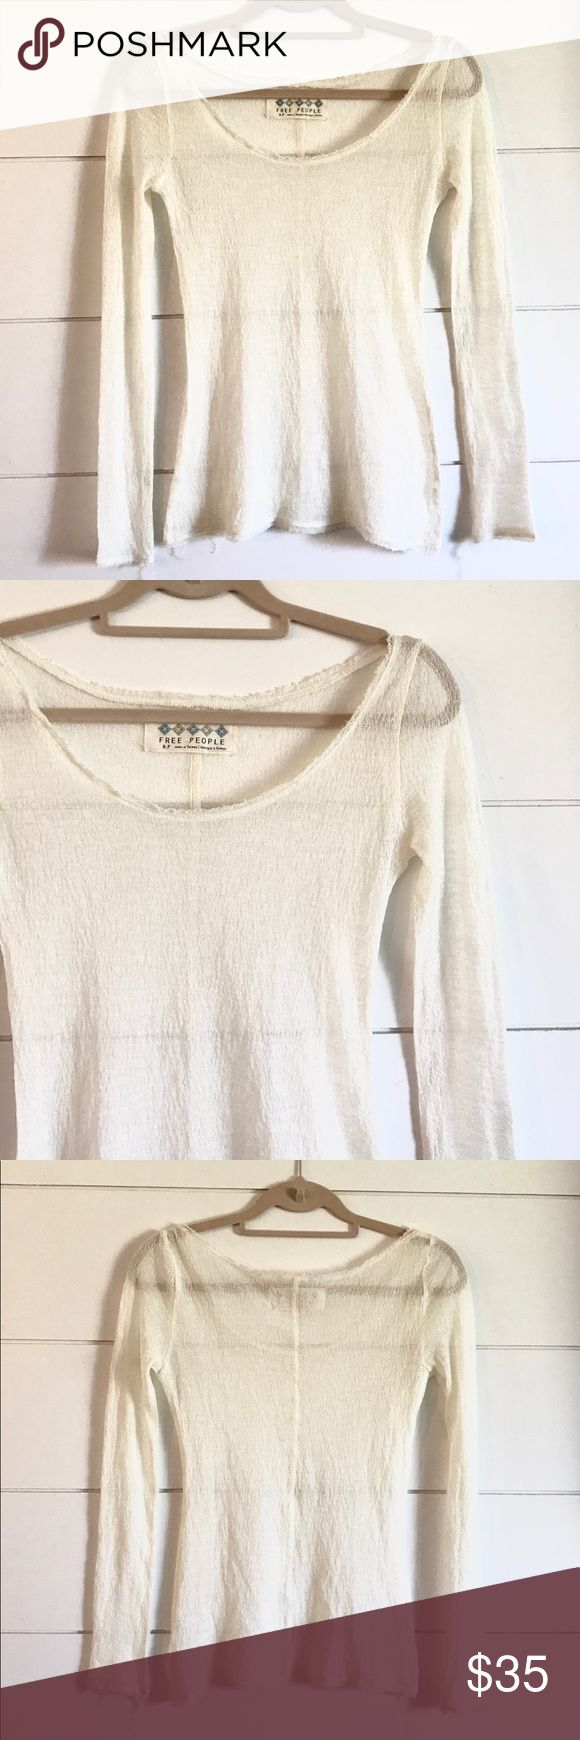 Free People Cream Long Sleeve Top Free People cream colored long sleeve shirt in some sort of organic looking sheer stretchy material. It also has a kind of frayed unfinished edge along the hems. Beautiful shirt and great condition. Size small Free People Tops Tees - Long Sleeve